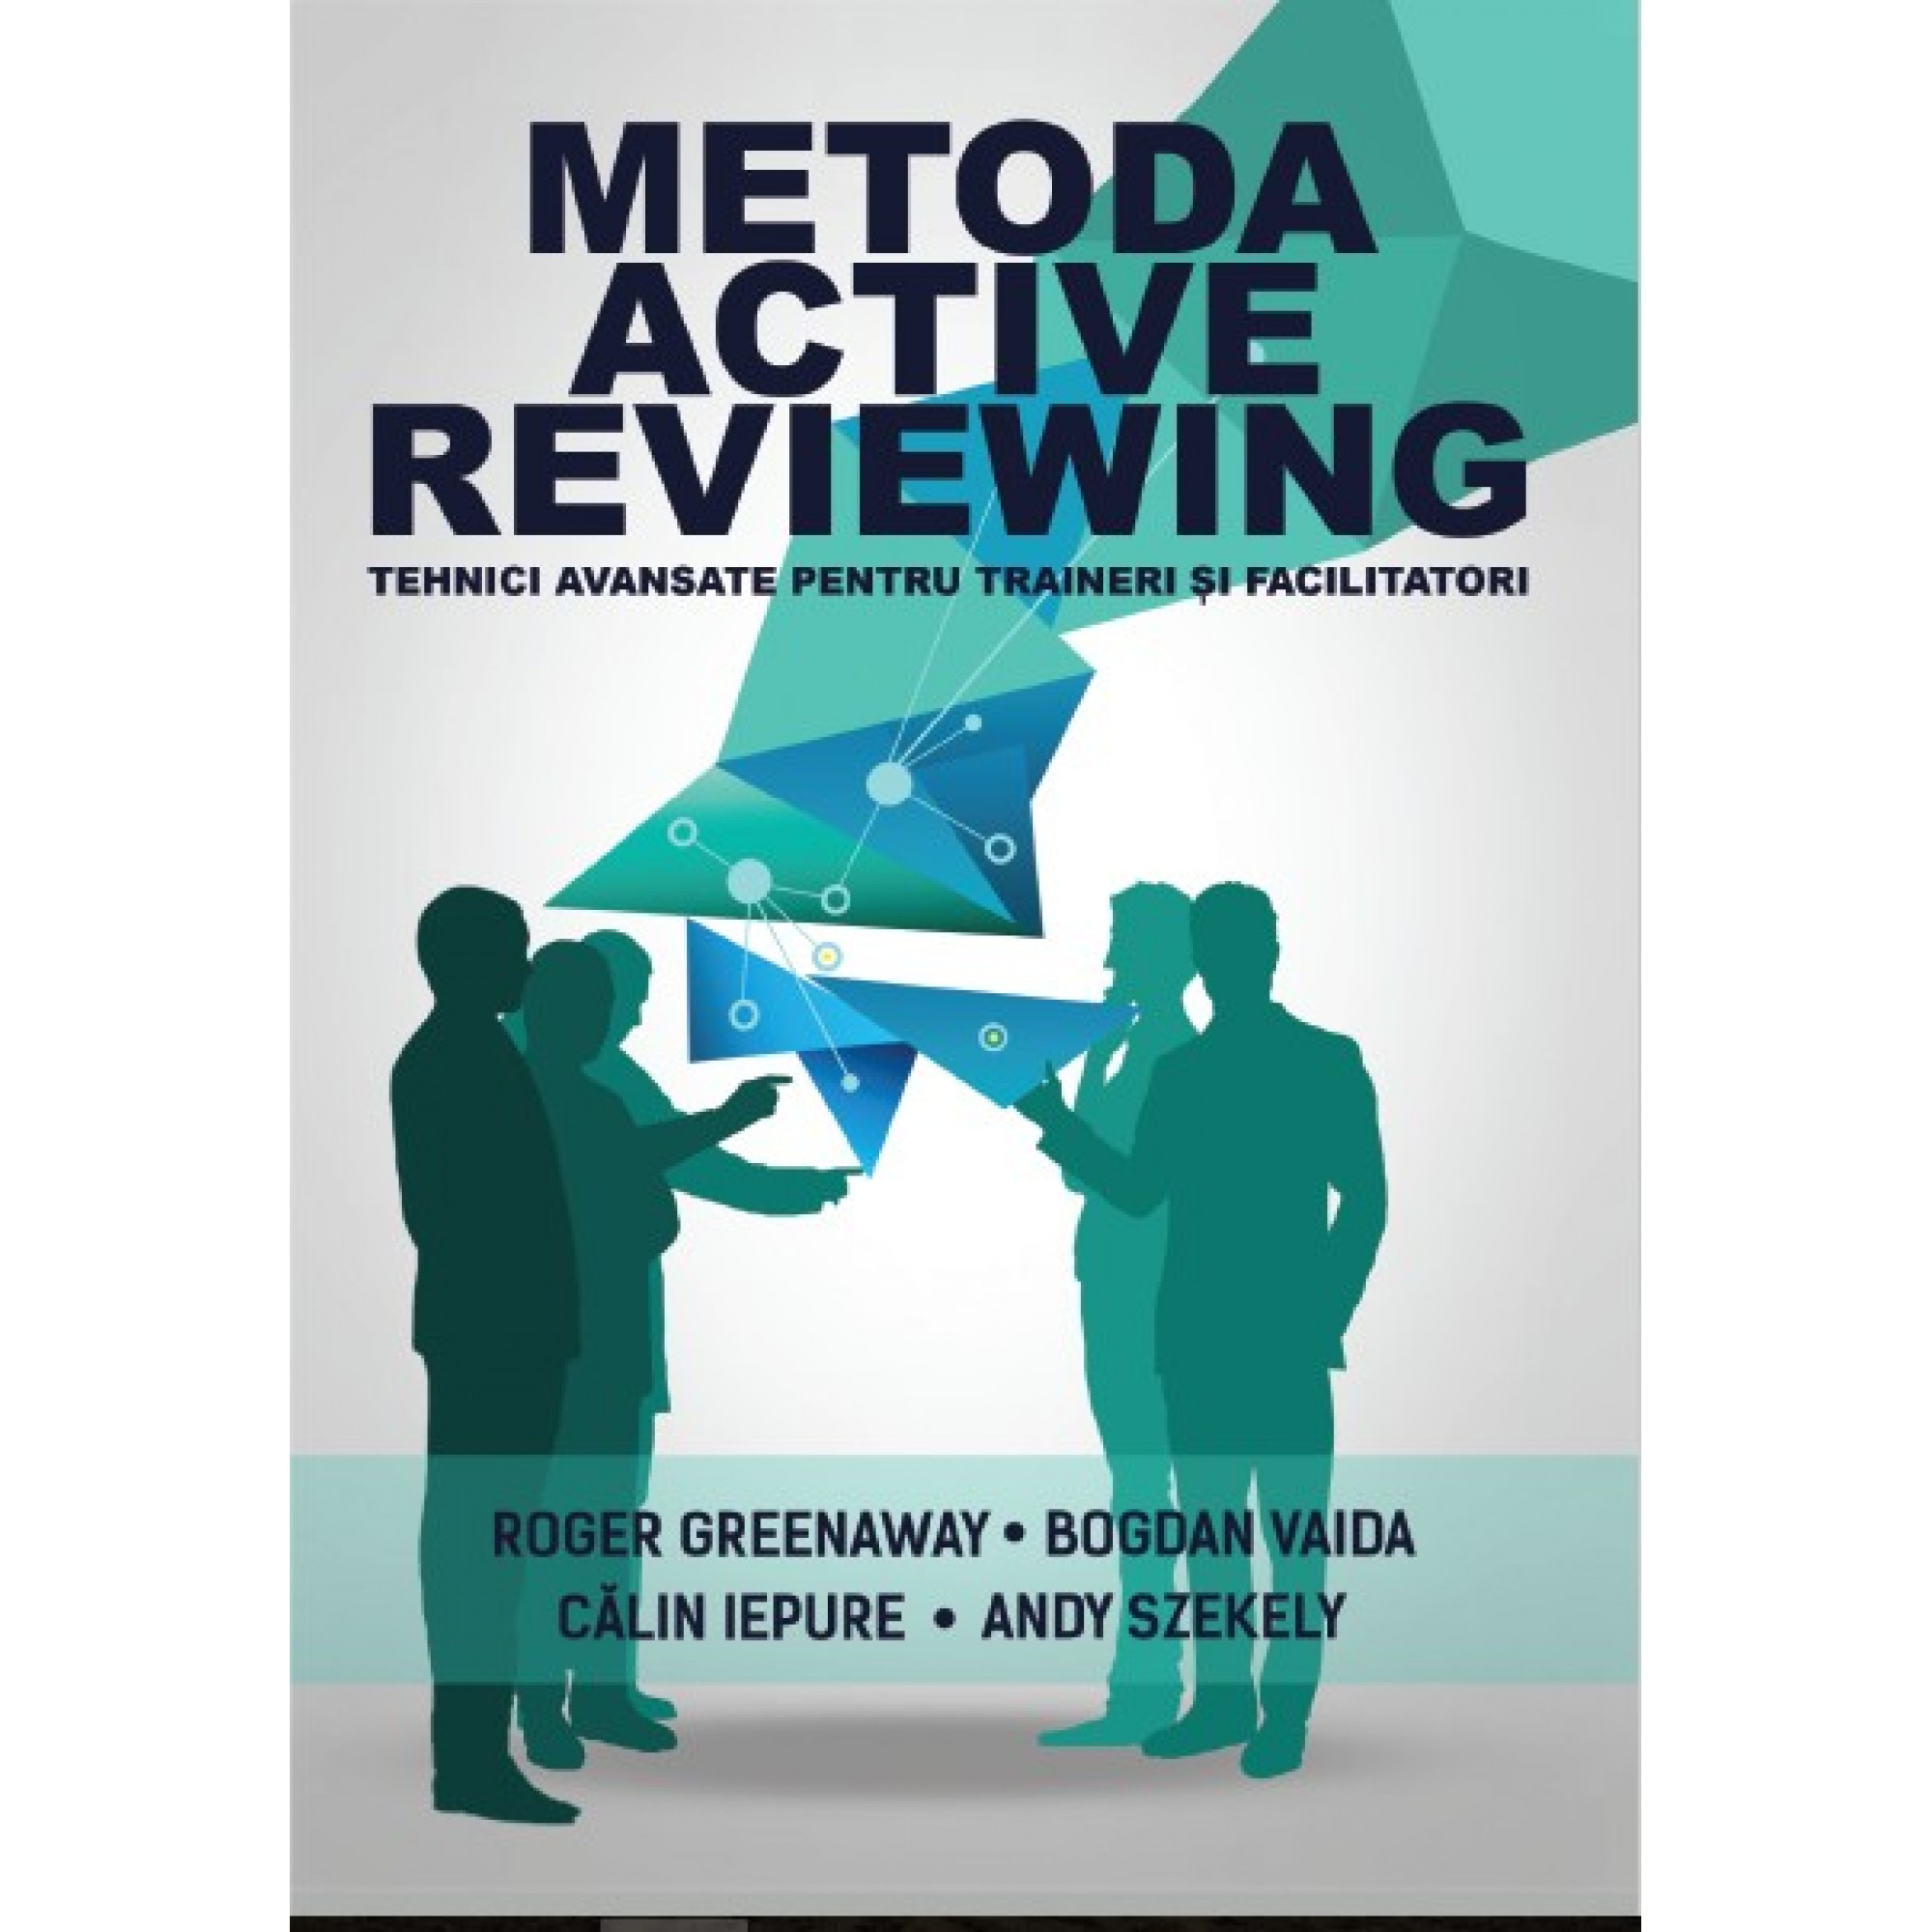 Metoda Active Reviewing